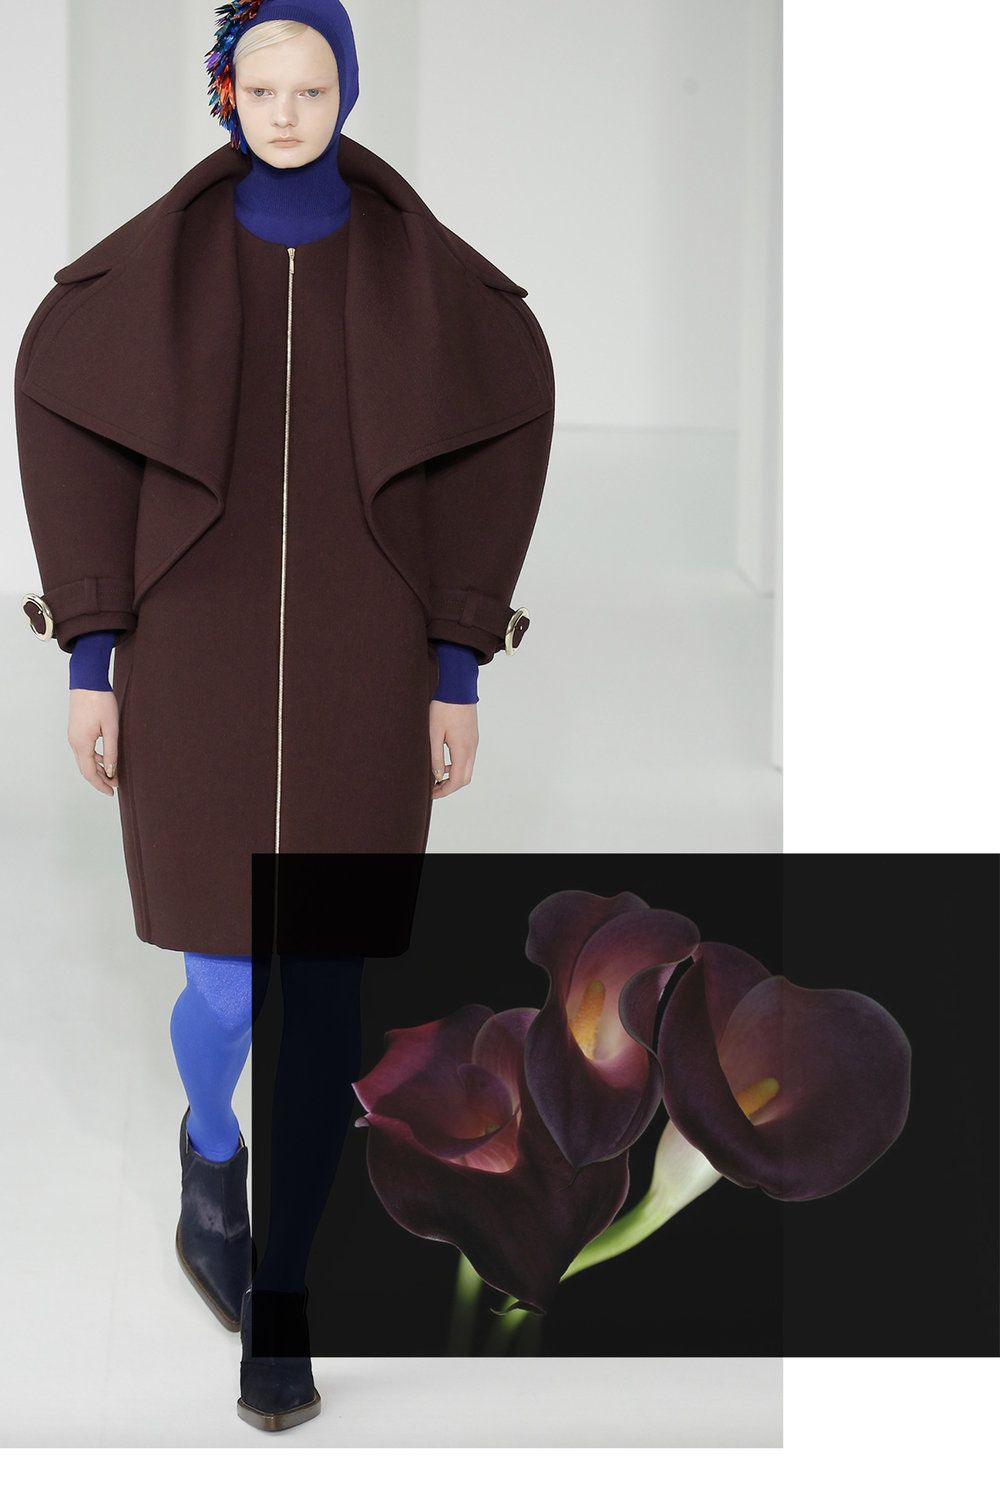 Delpozo paired with Calla Lily